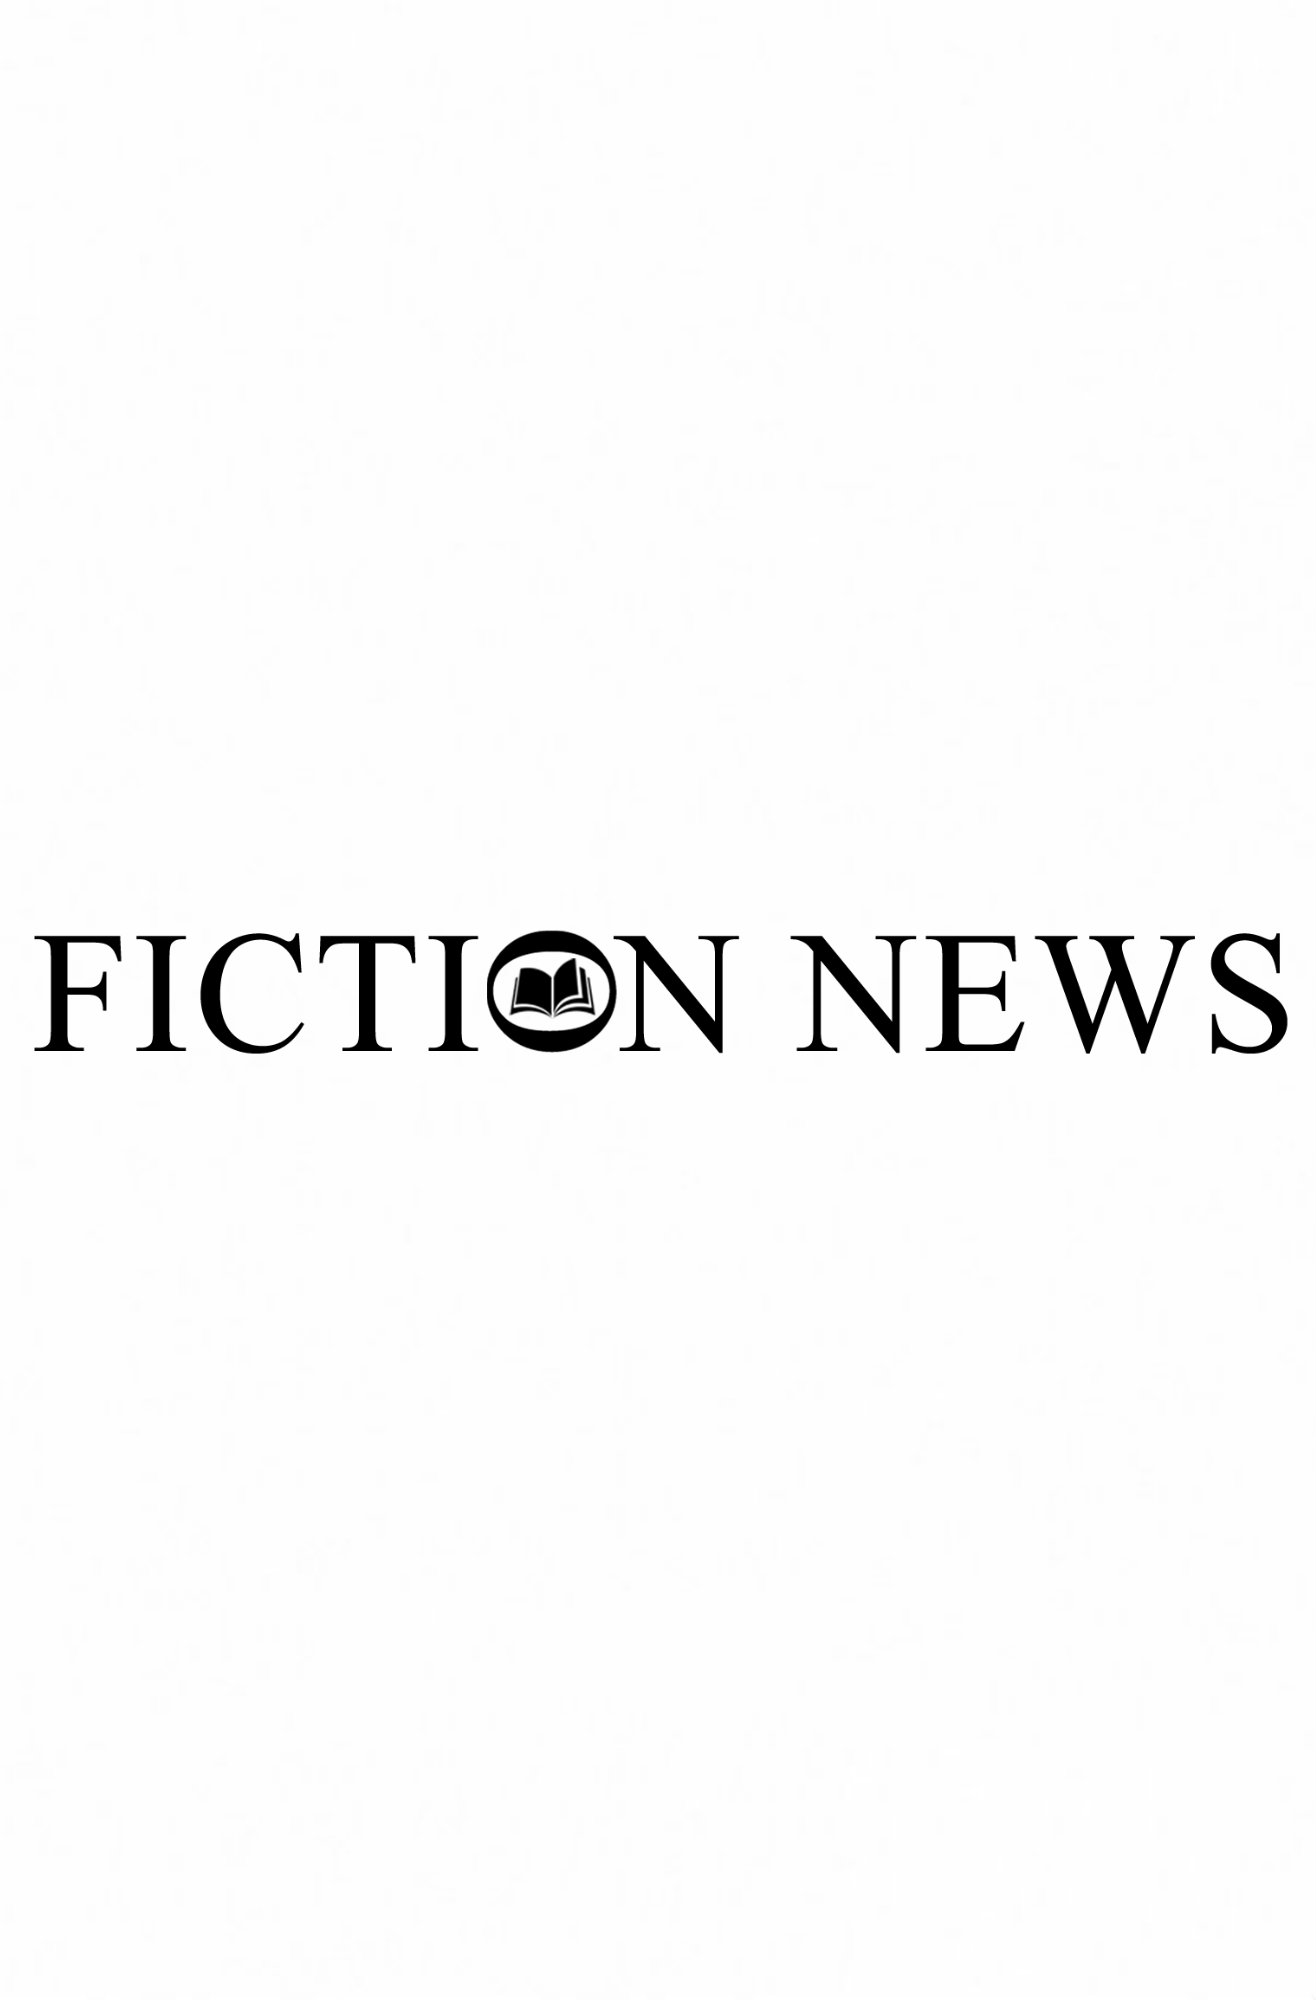 Fiction news en fondo blanco